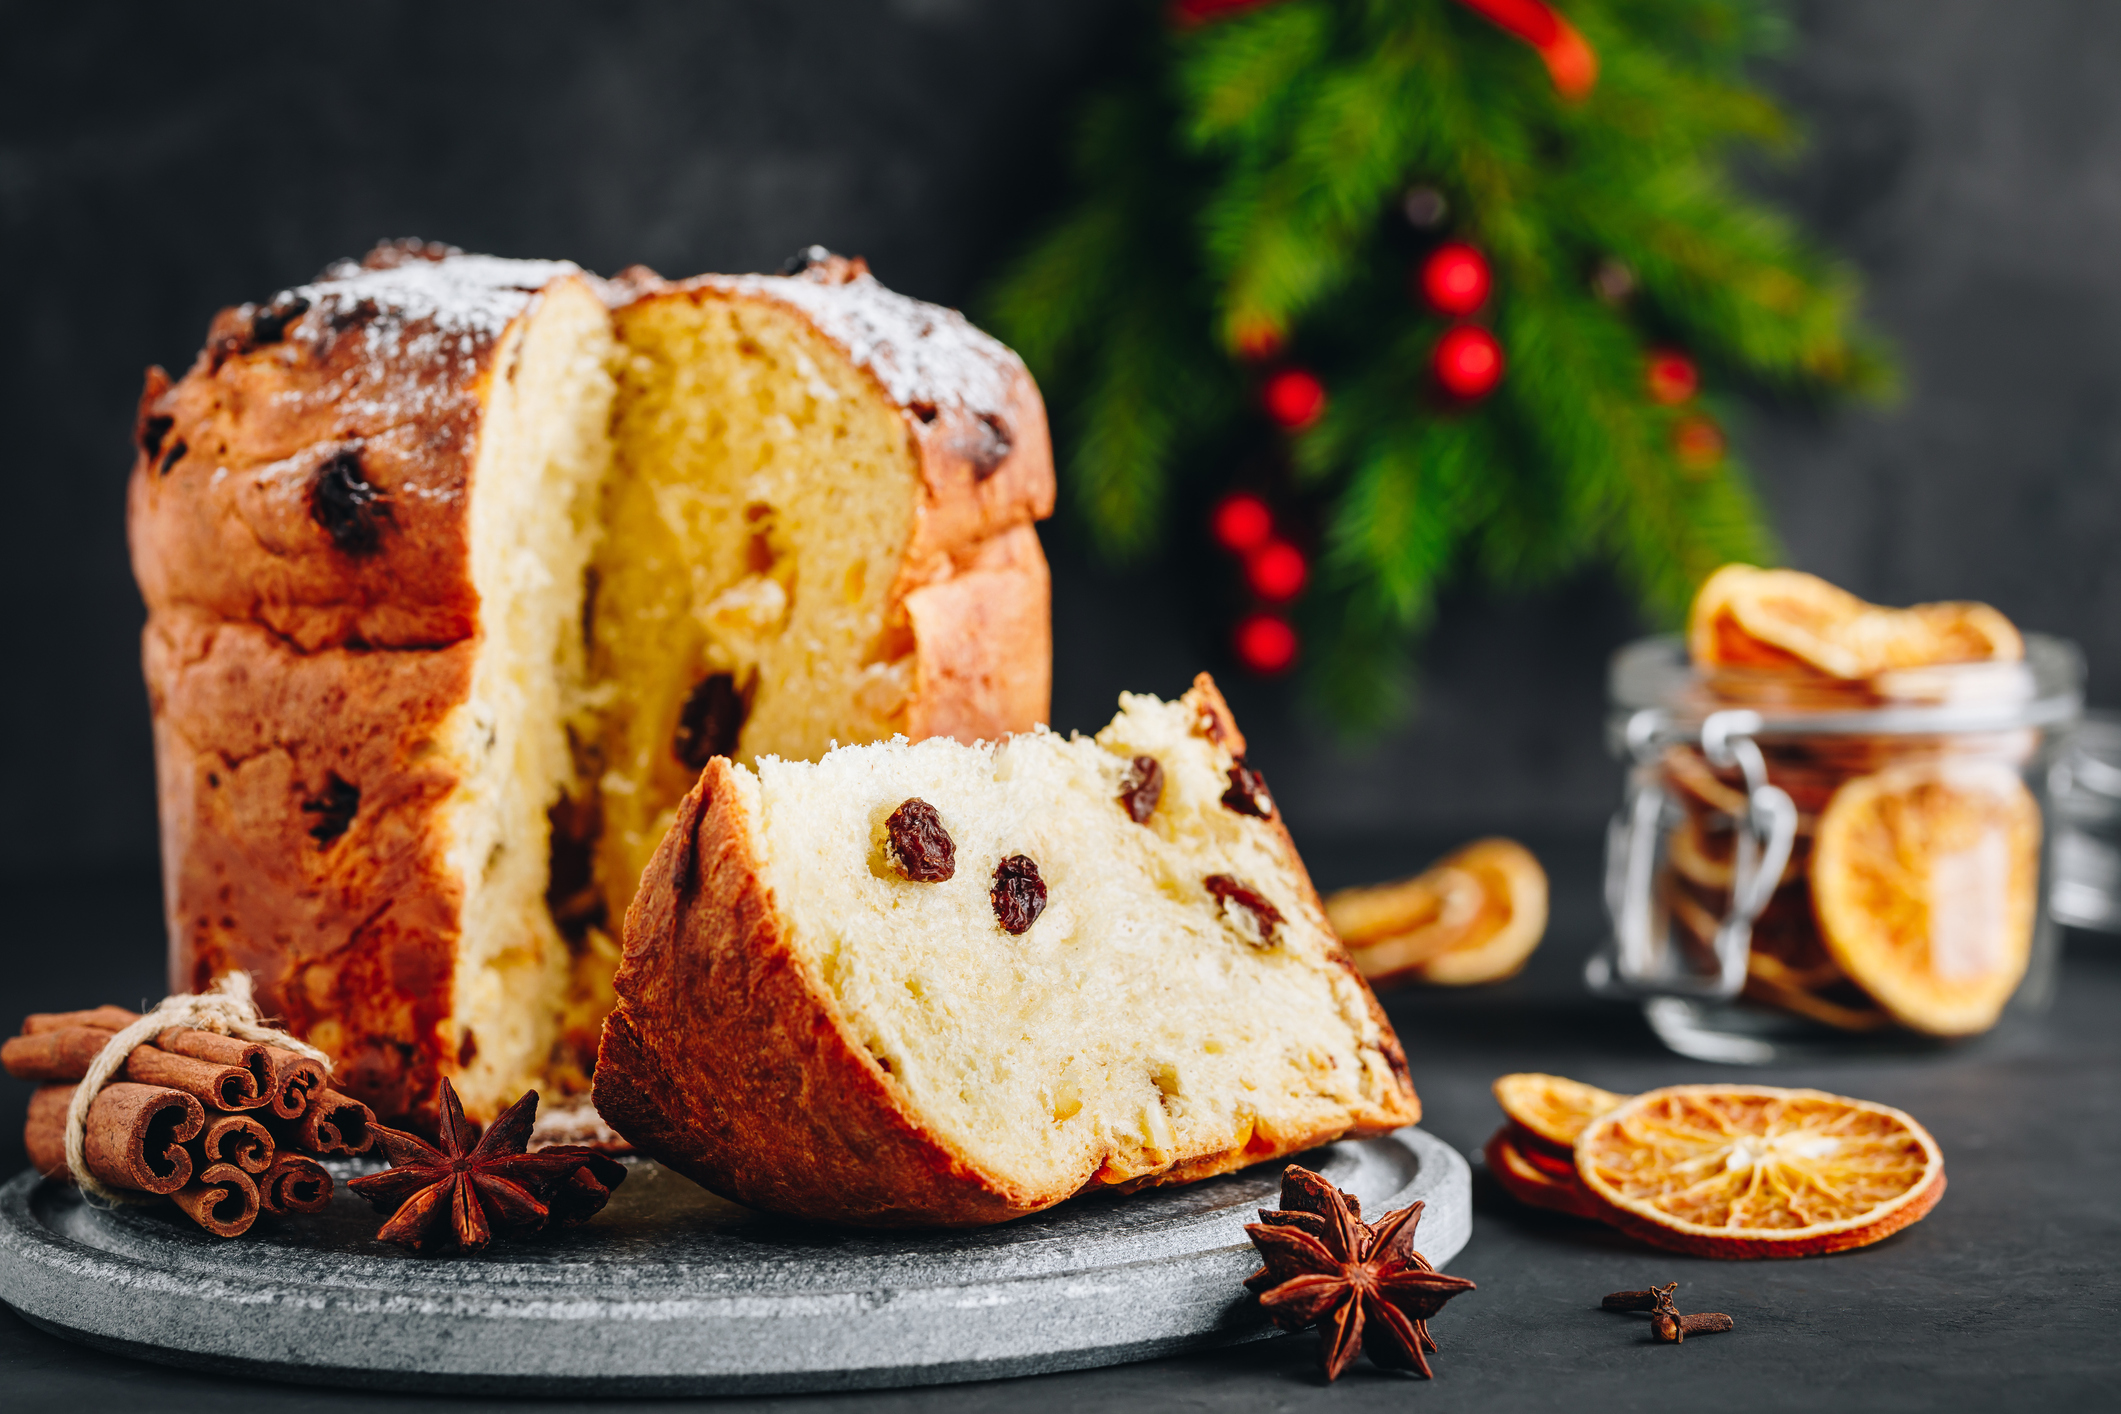 Traditional Christmas Panettone cake with dried fruits on dark stone background, copy space.